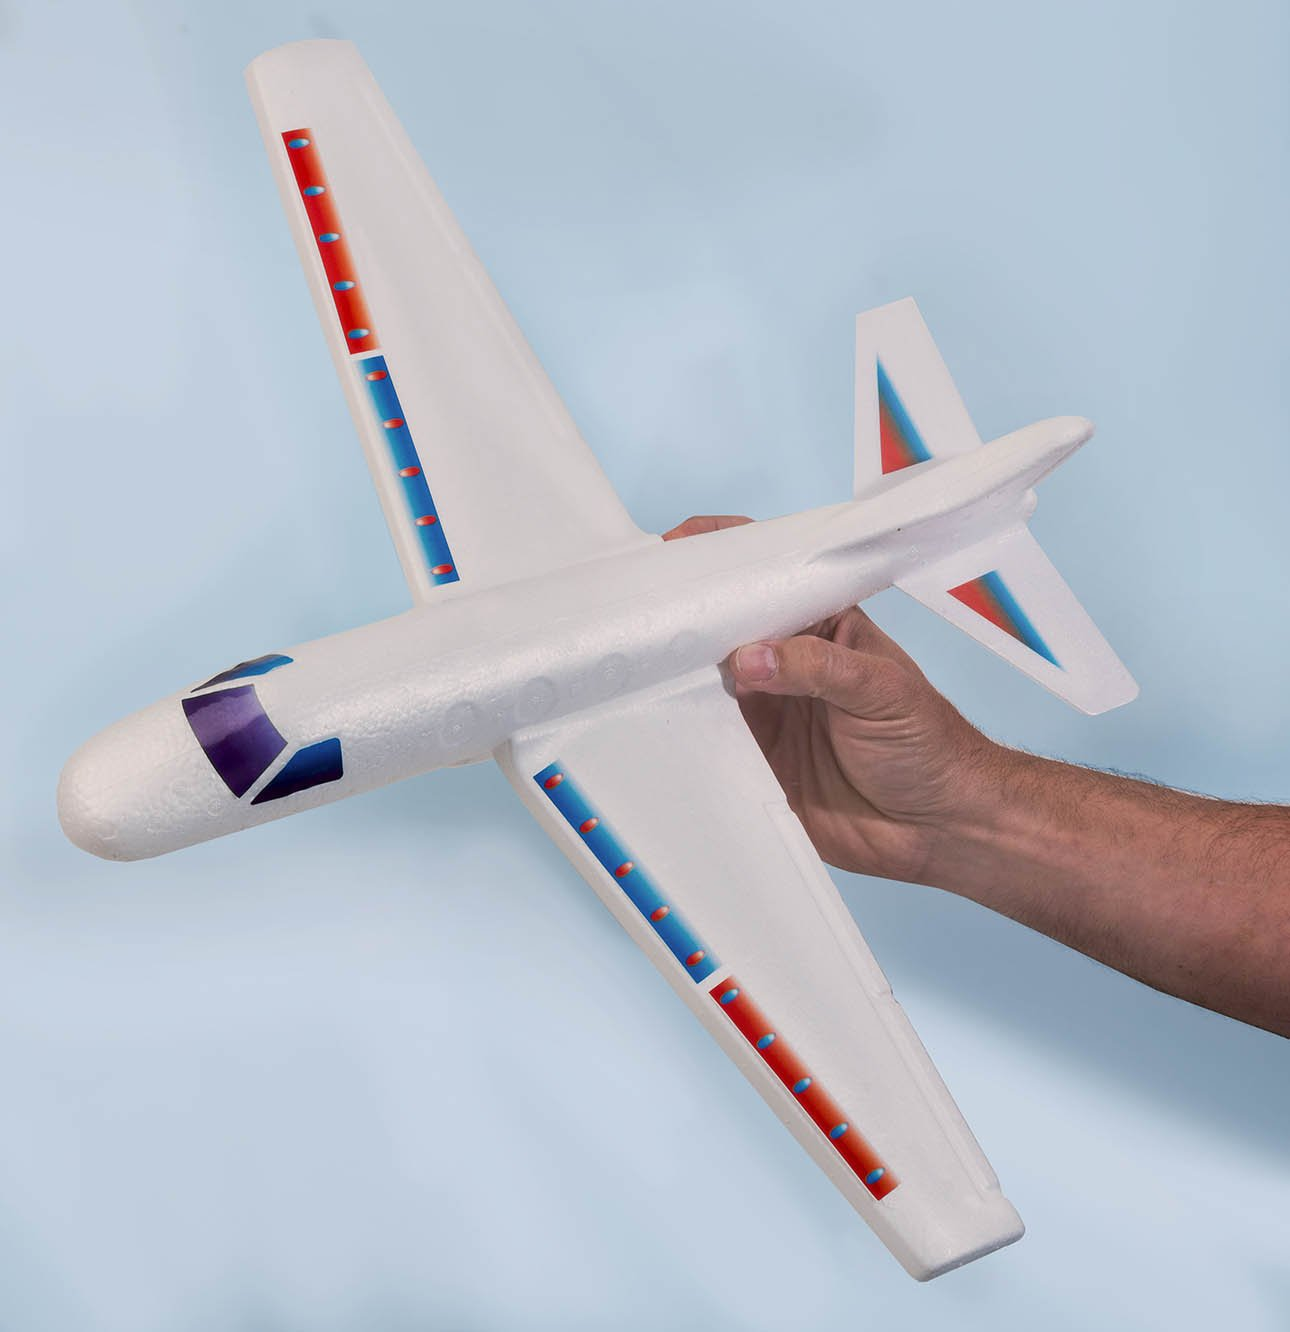 2GoodShop Giant Airplane Glider Kids Fying Toy Build It, Throw It and Watch It Glide Hours of Outdoor Fun Pack of 6 | Item #1030 by 2GoodShop (Image #6)